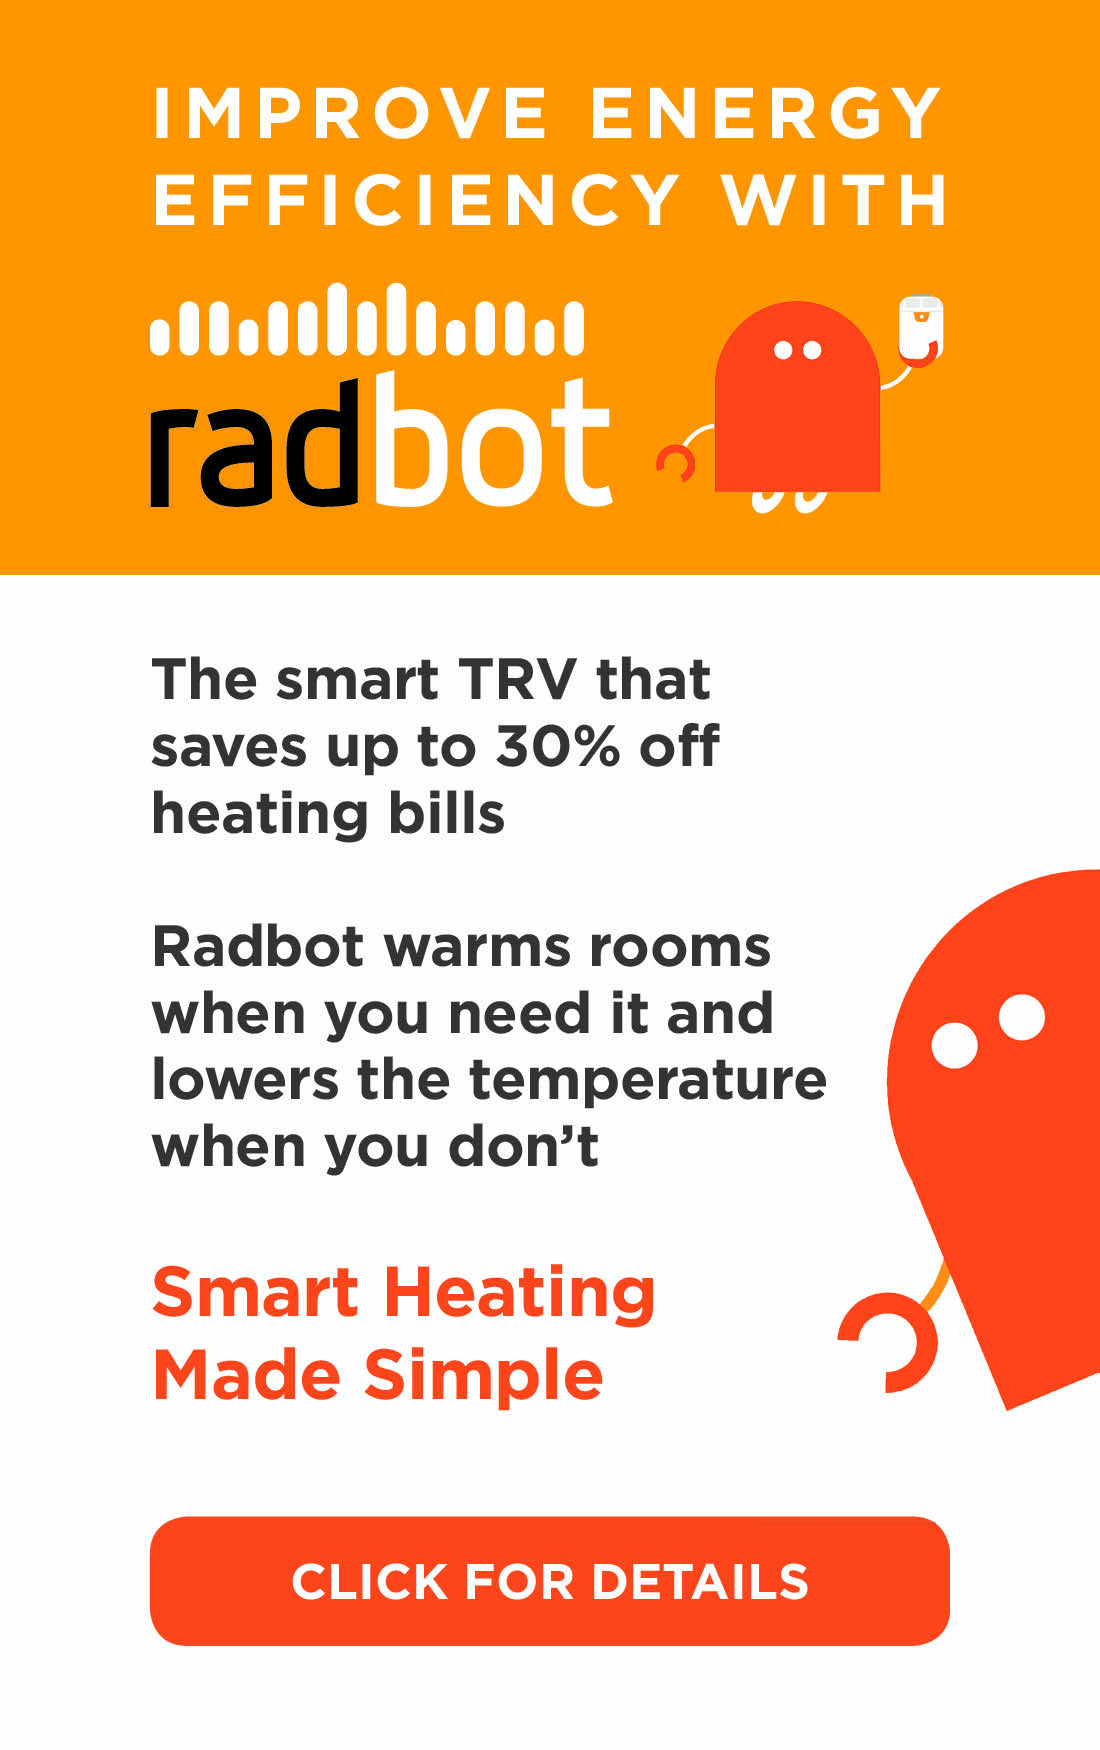 Improve energy efficiency with Radbot